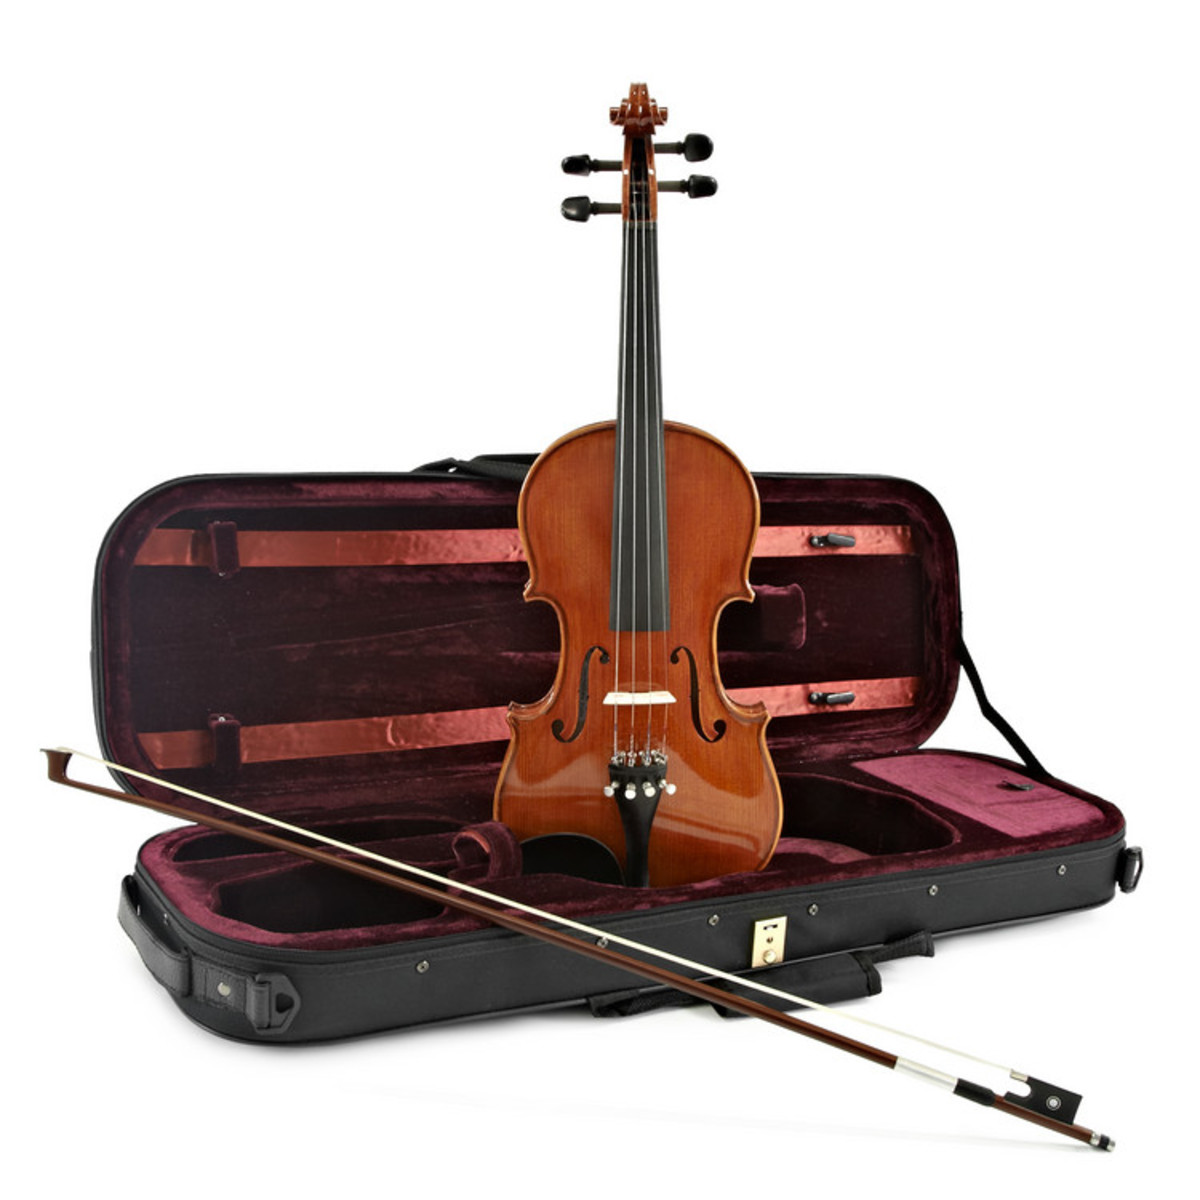 Image of Archer Swift Intermediate Violin by Gear4music